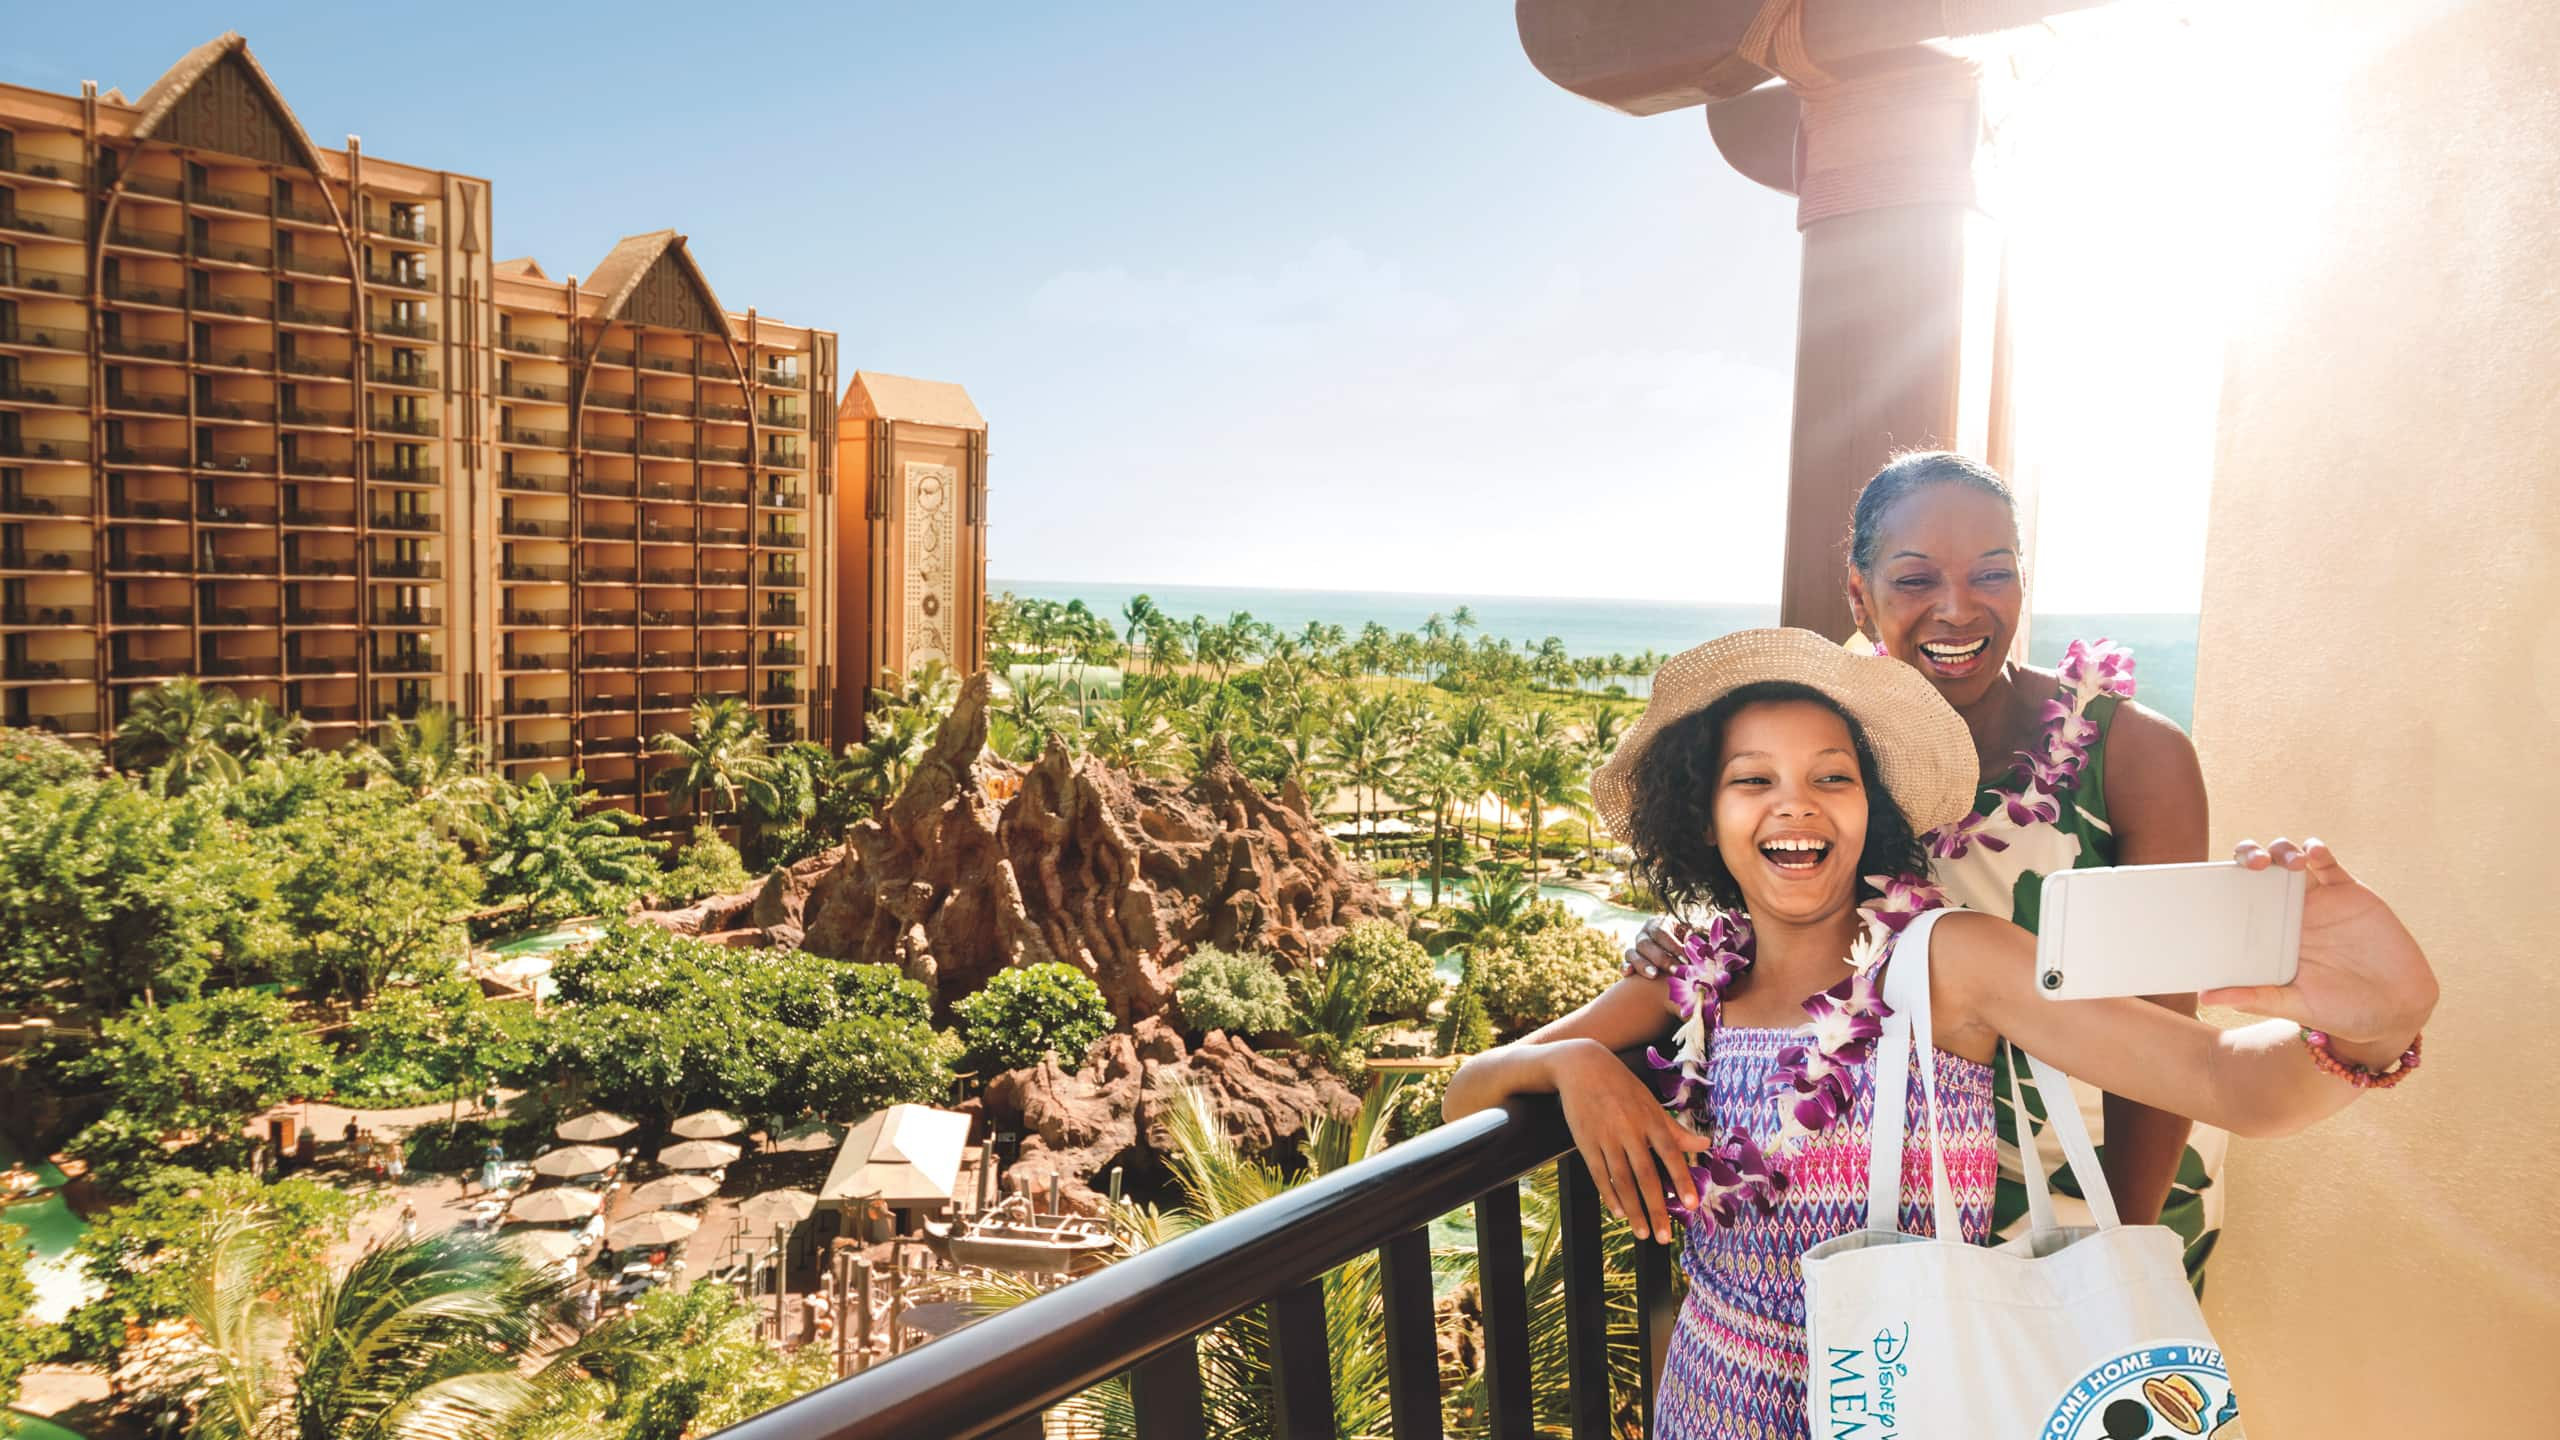 A mother and daughter take a selfie on the balcony of a hotel room room overlooking a Hawaiian landscape